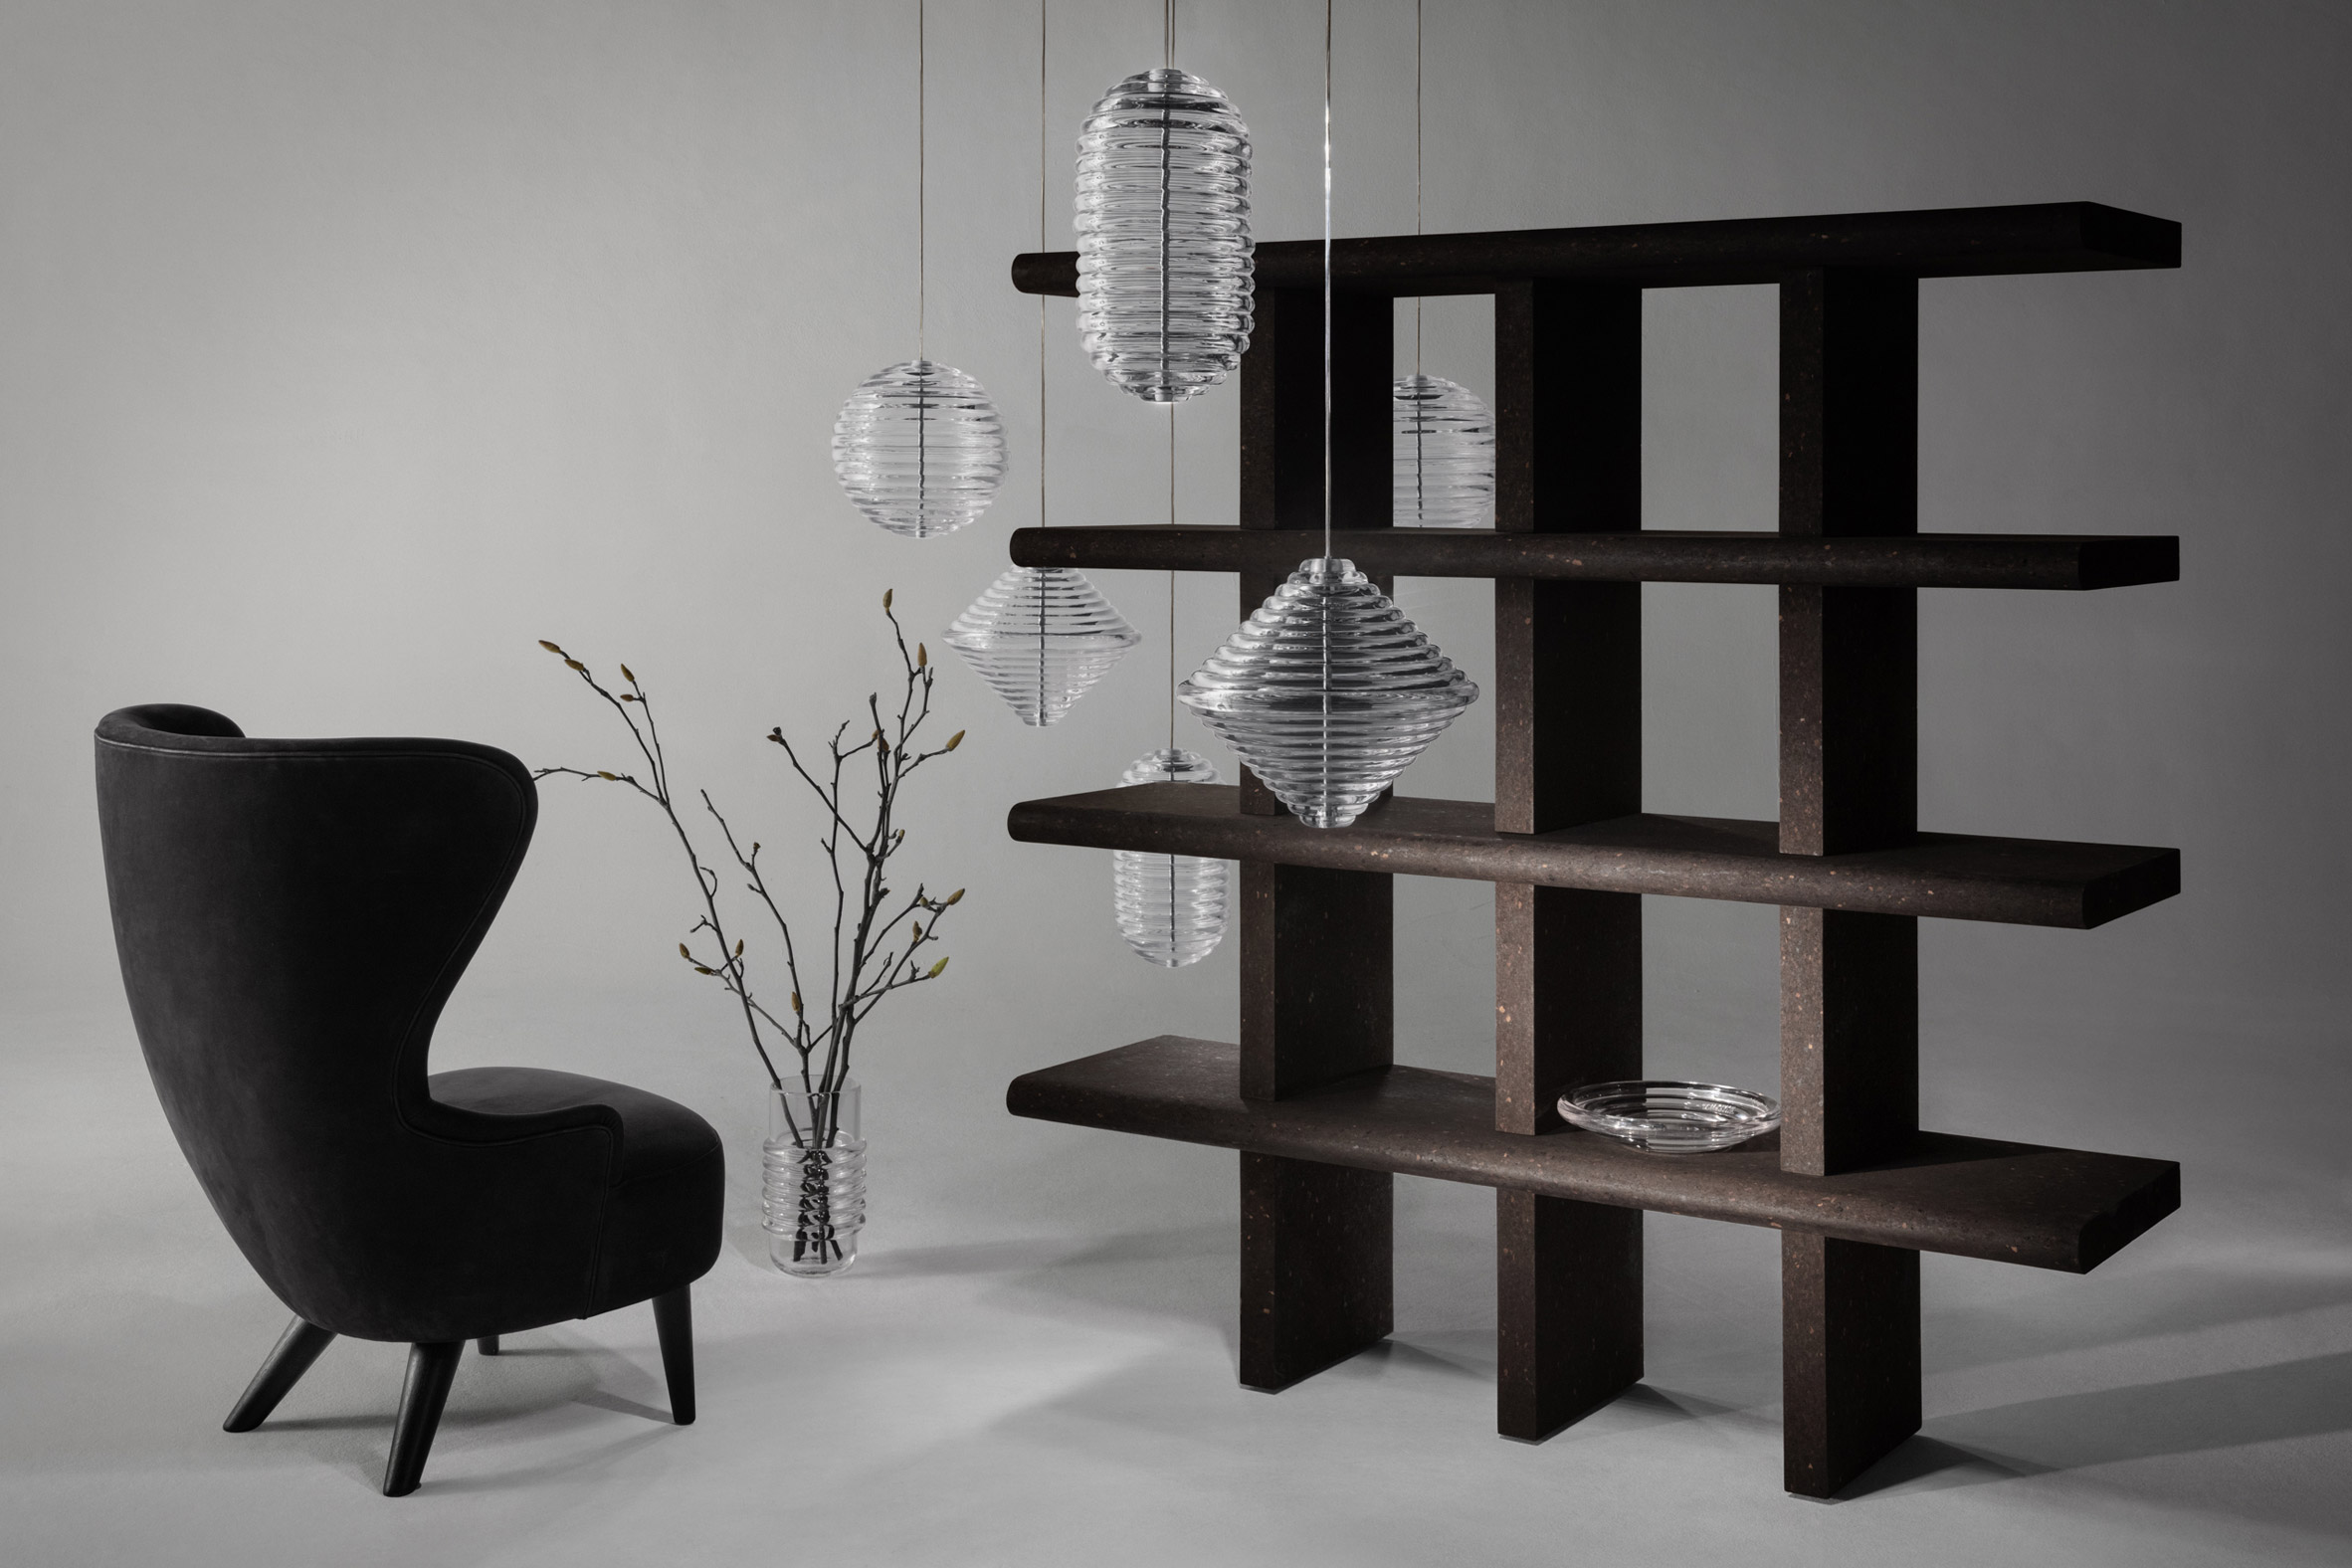 Chair sitting in front of cork shelving unit.